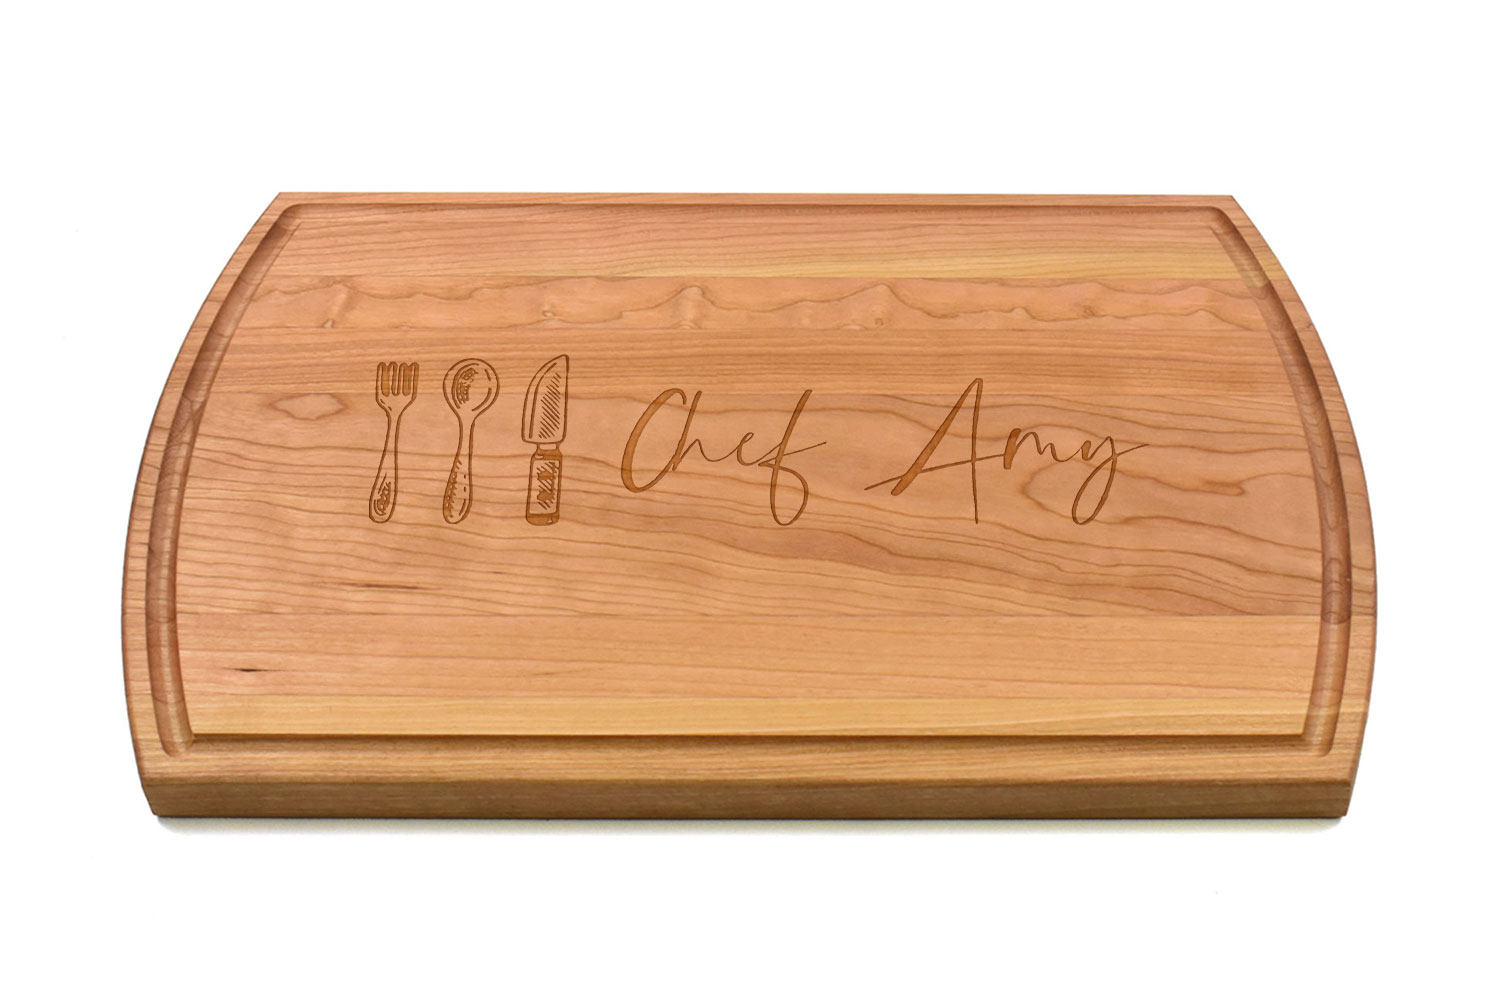 Large Canadian Made Cherry Wood Cutting Board, Personalised Engraving